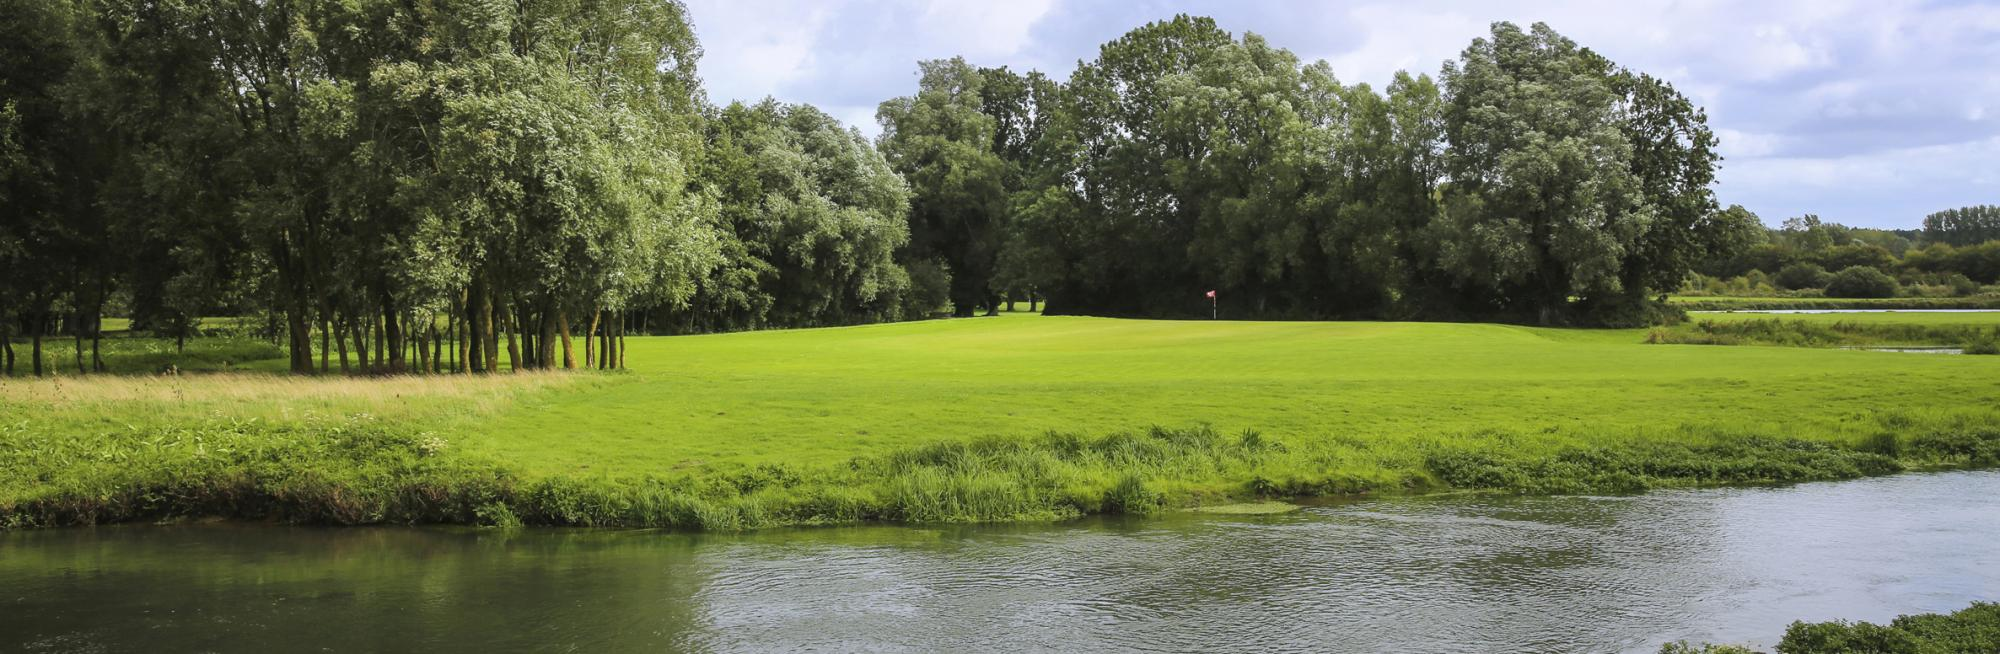 Golf de Nampont Saint-Martin has got among the best golf course around Northern France